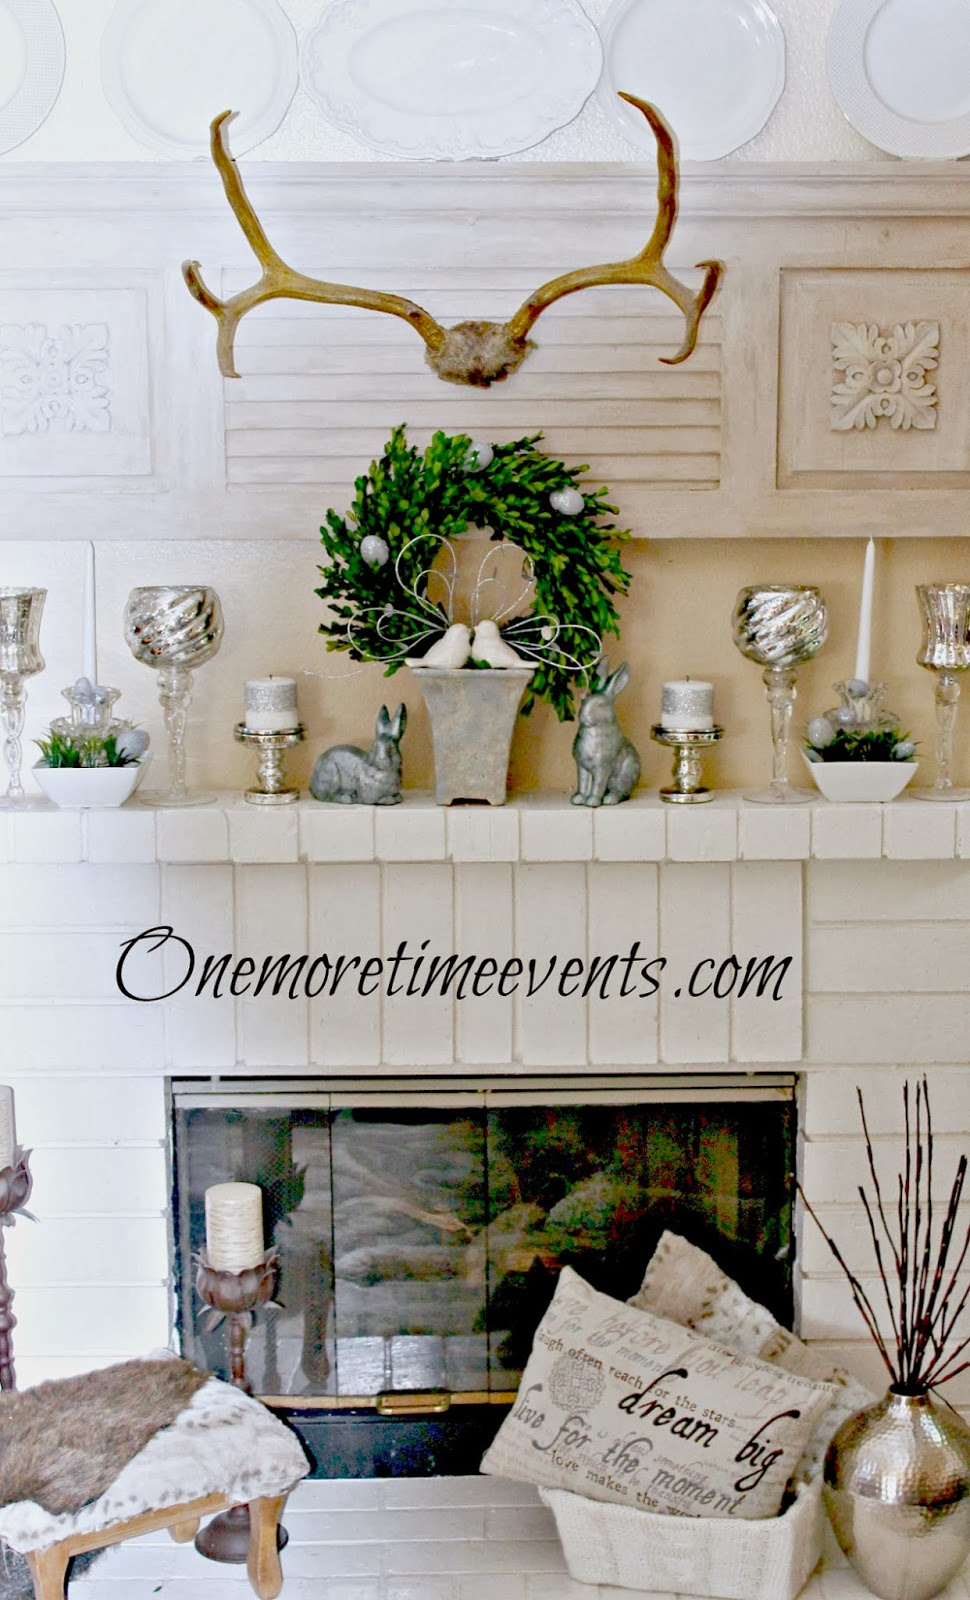 Spring mantel with a bit of Winter at One More Time Events.com